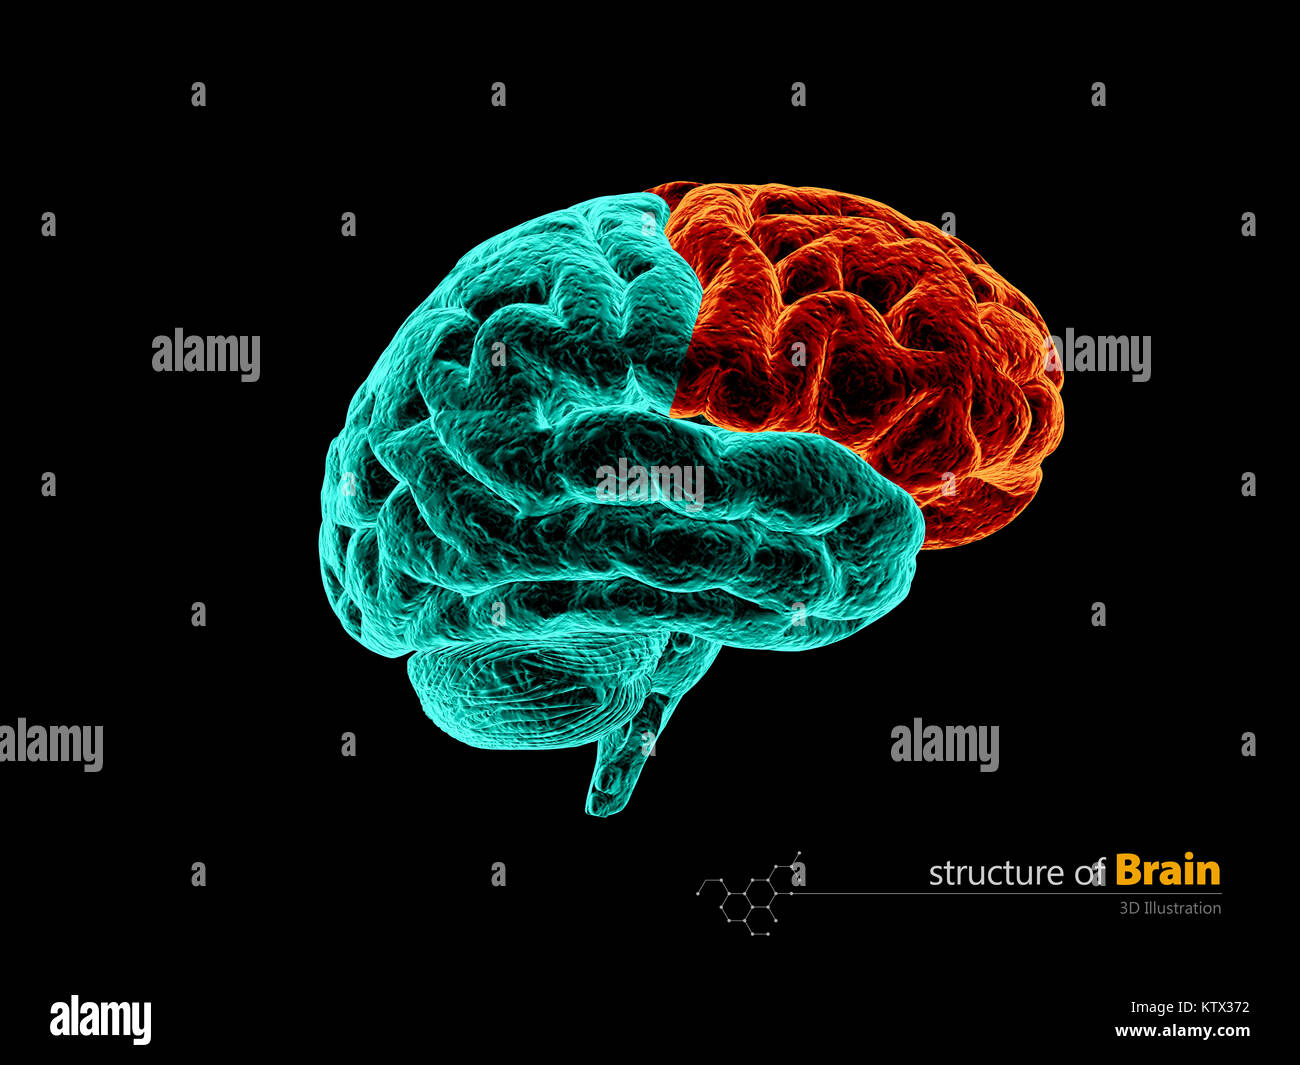 Brain Frontal Section Stockfotos & Brain Frontal Section Bilder - Alamy